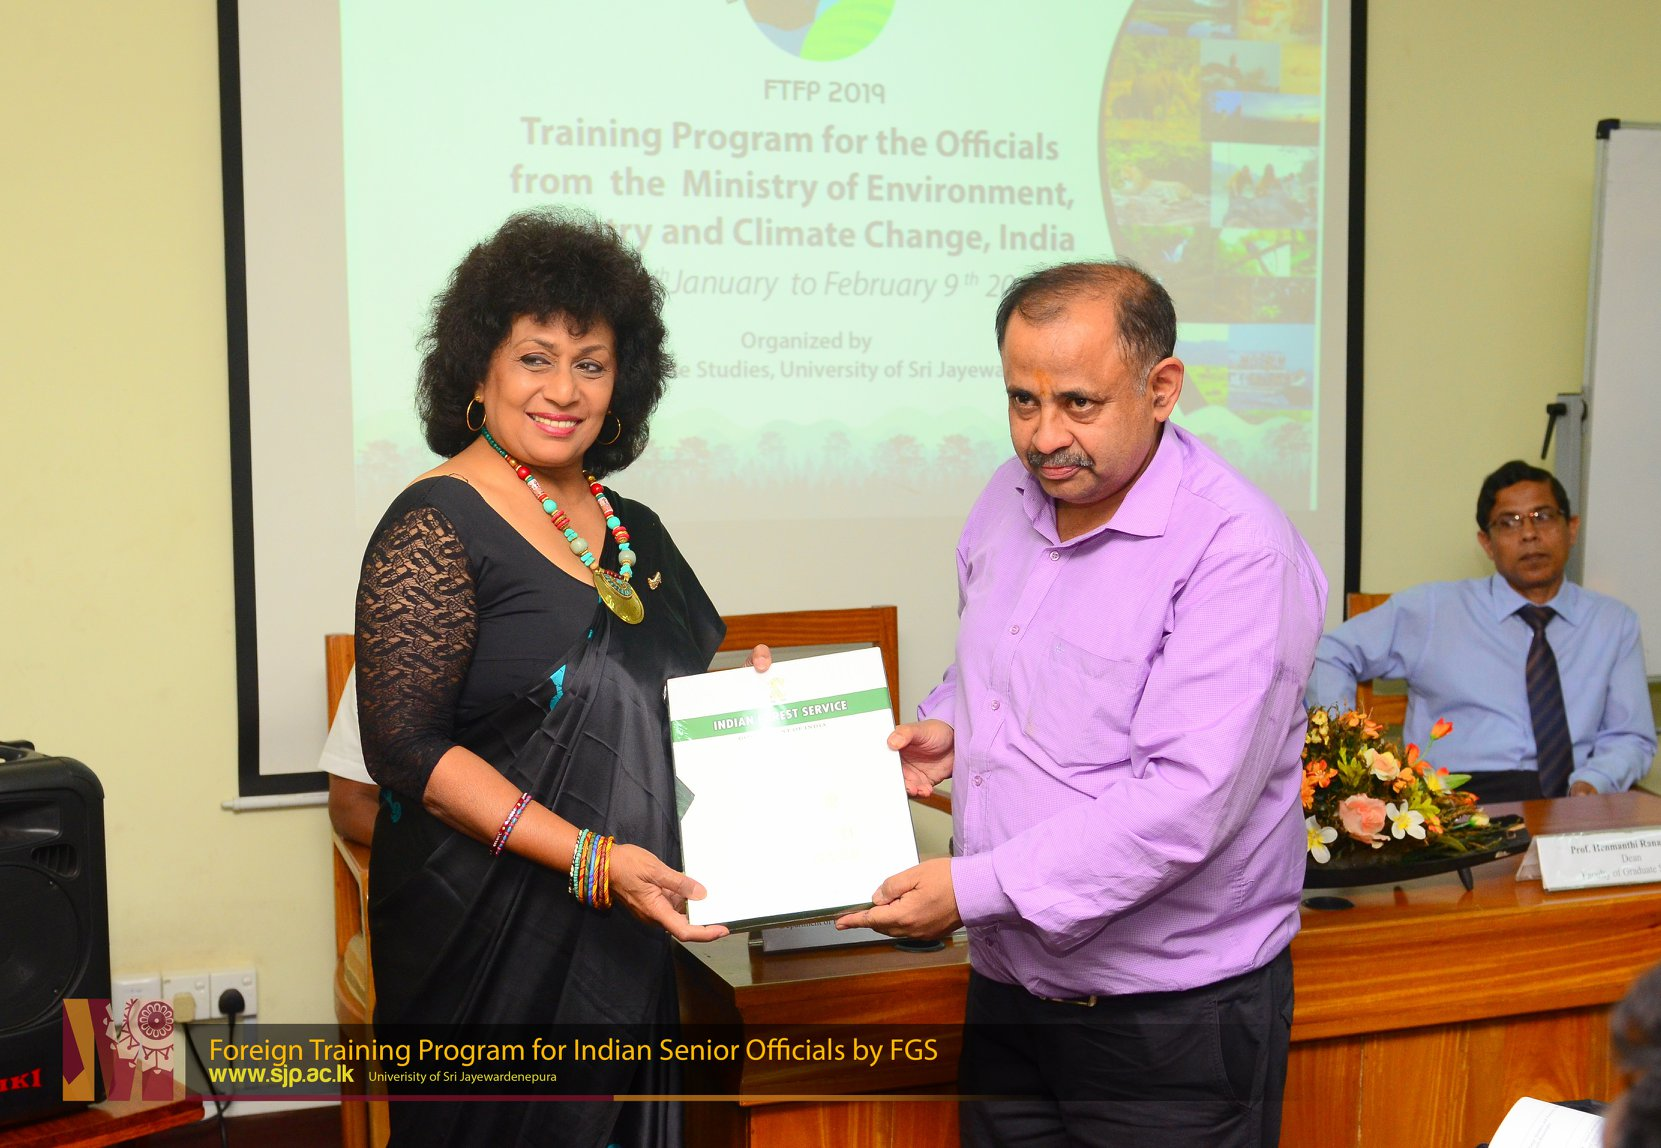 Foreign Training Program for Indian Senior Officials by FGS (6